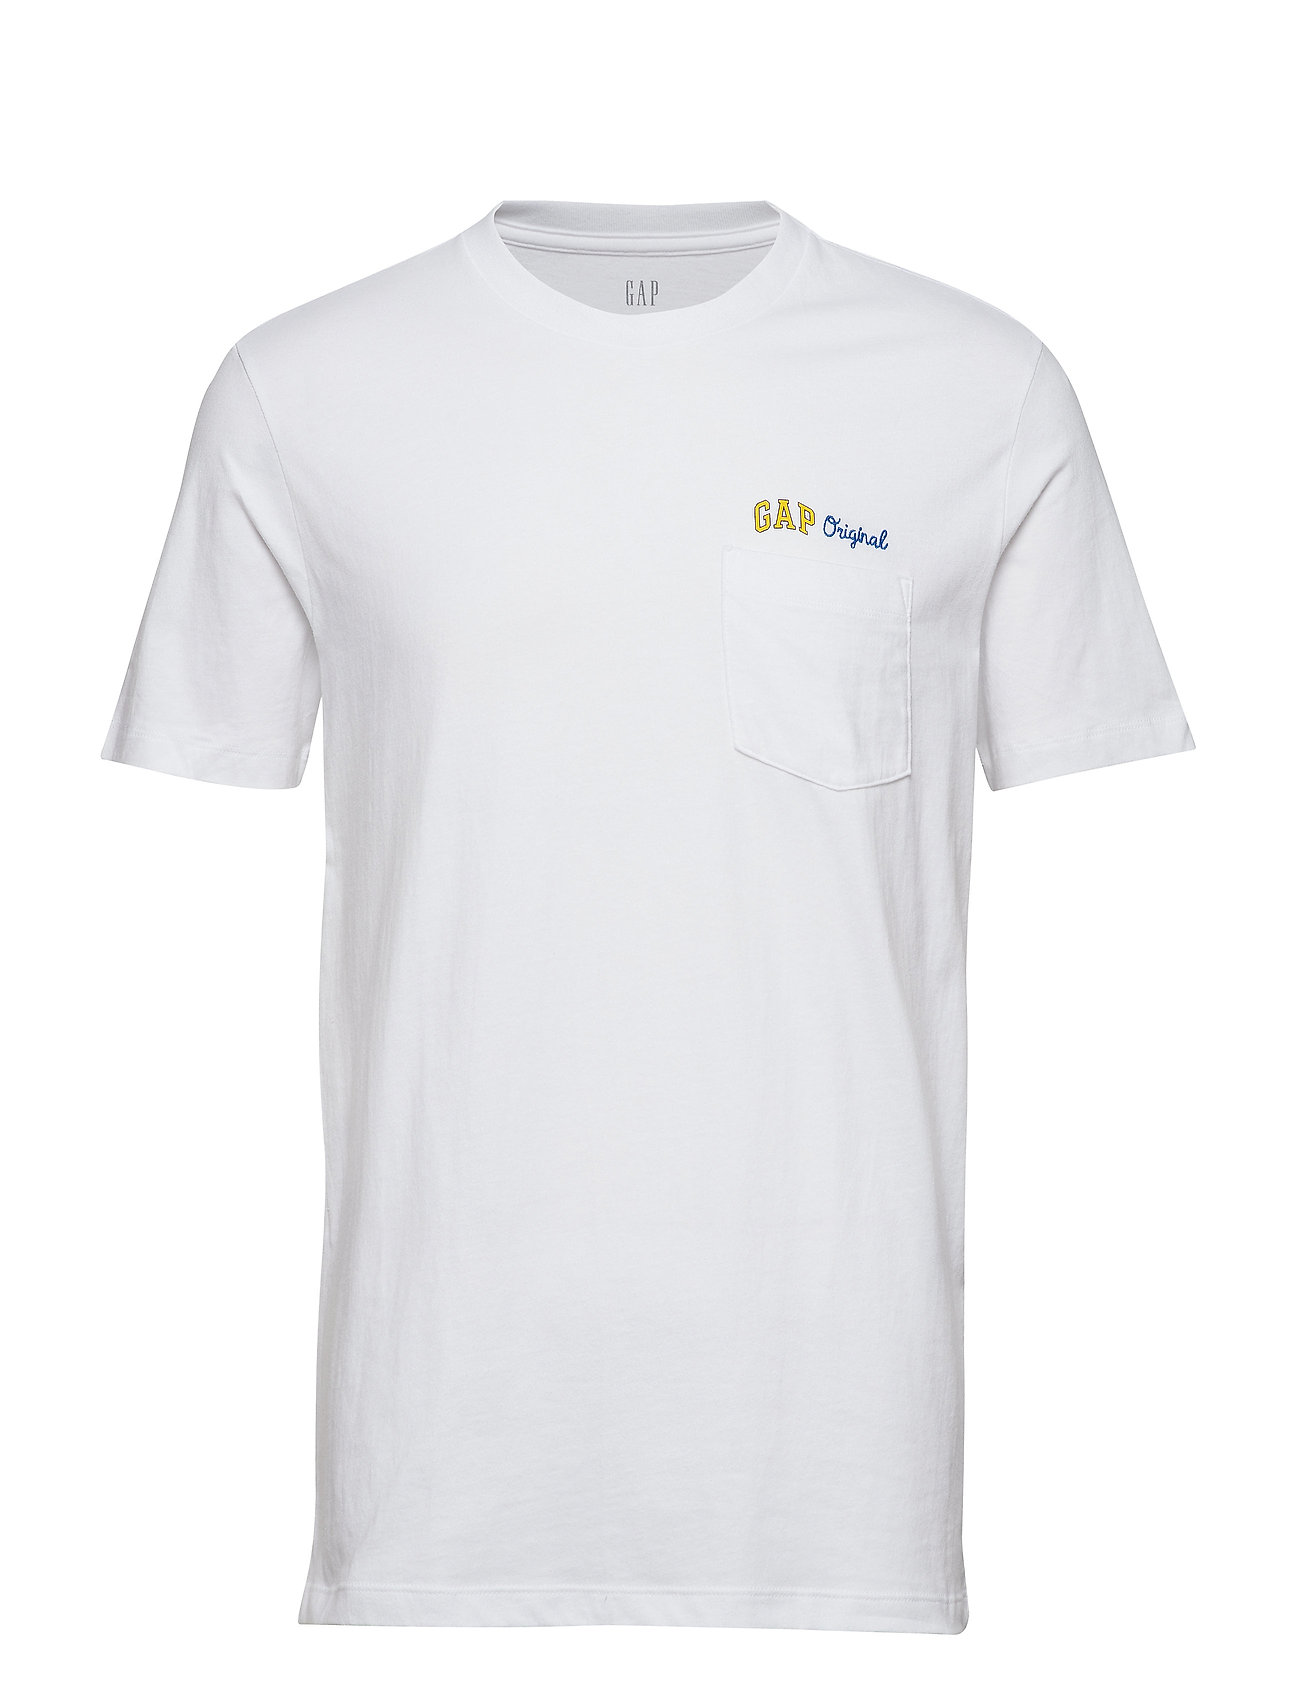 GAP GAP ORIG PKT T - OPTIC WHITE